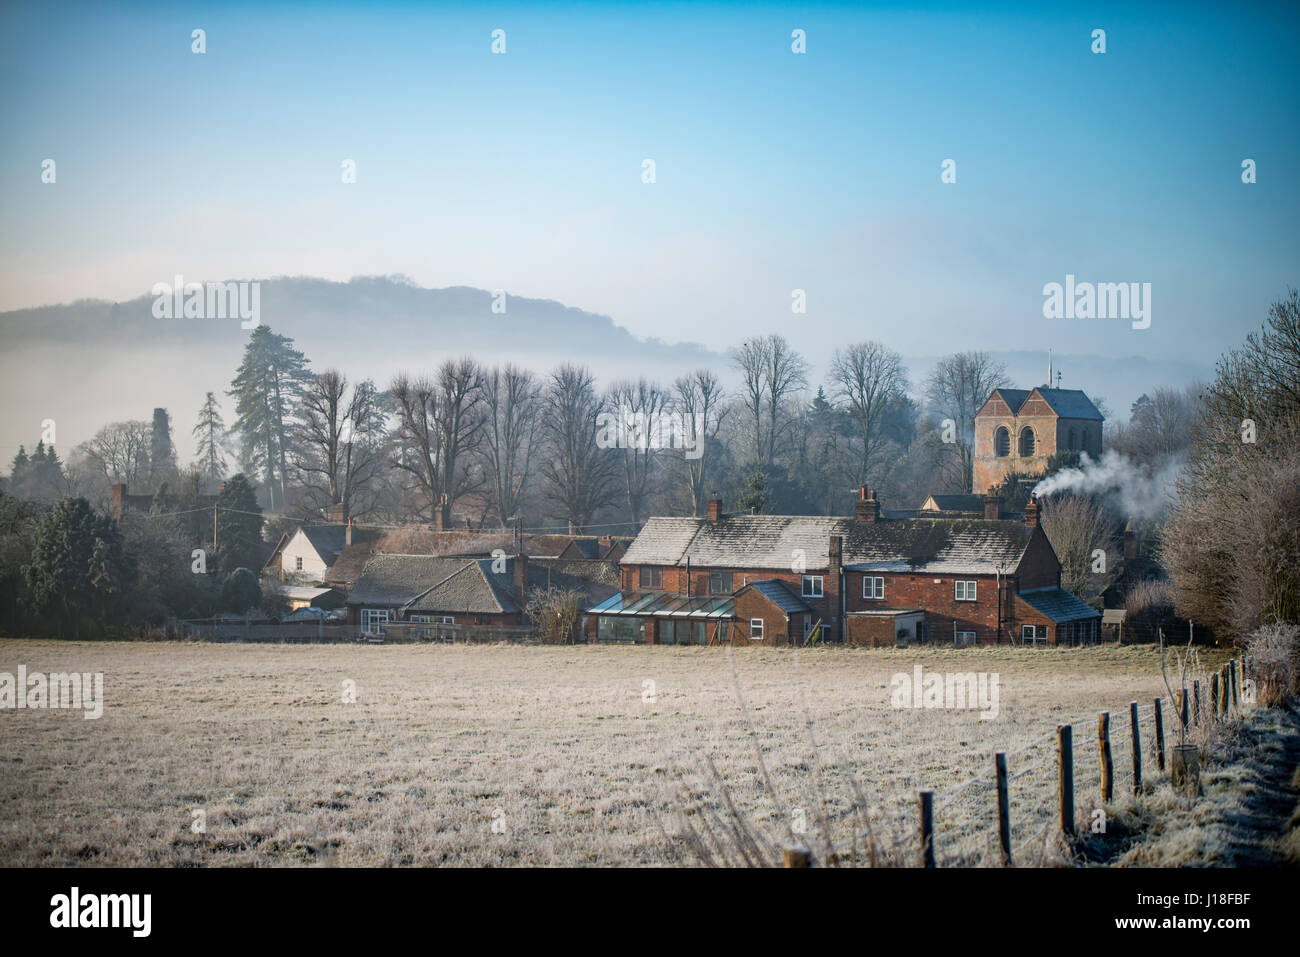 The village of Fingest from the East on a foggy, frosty, winter's morning, - Stock Image